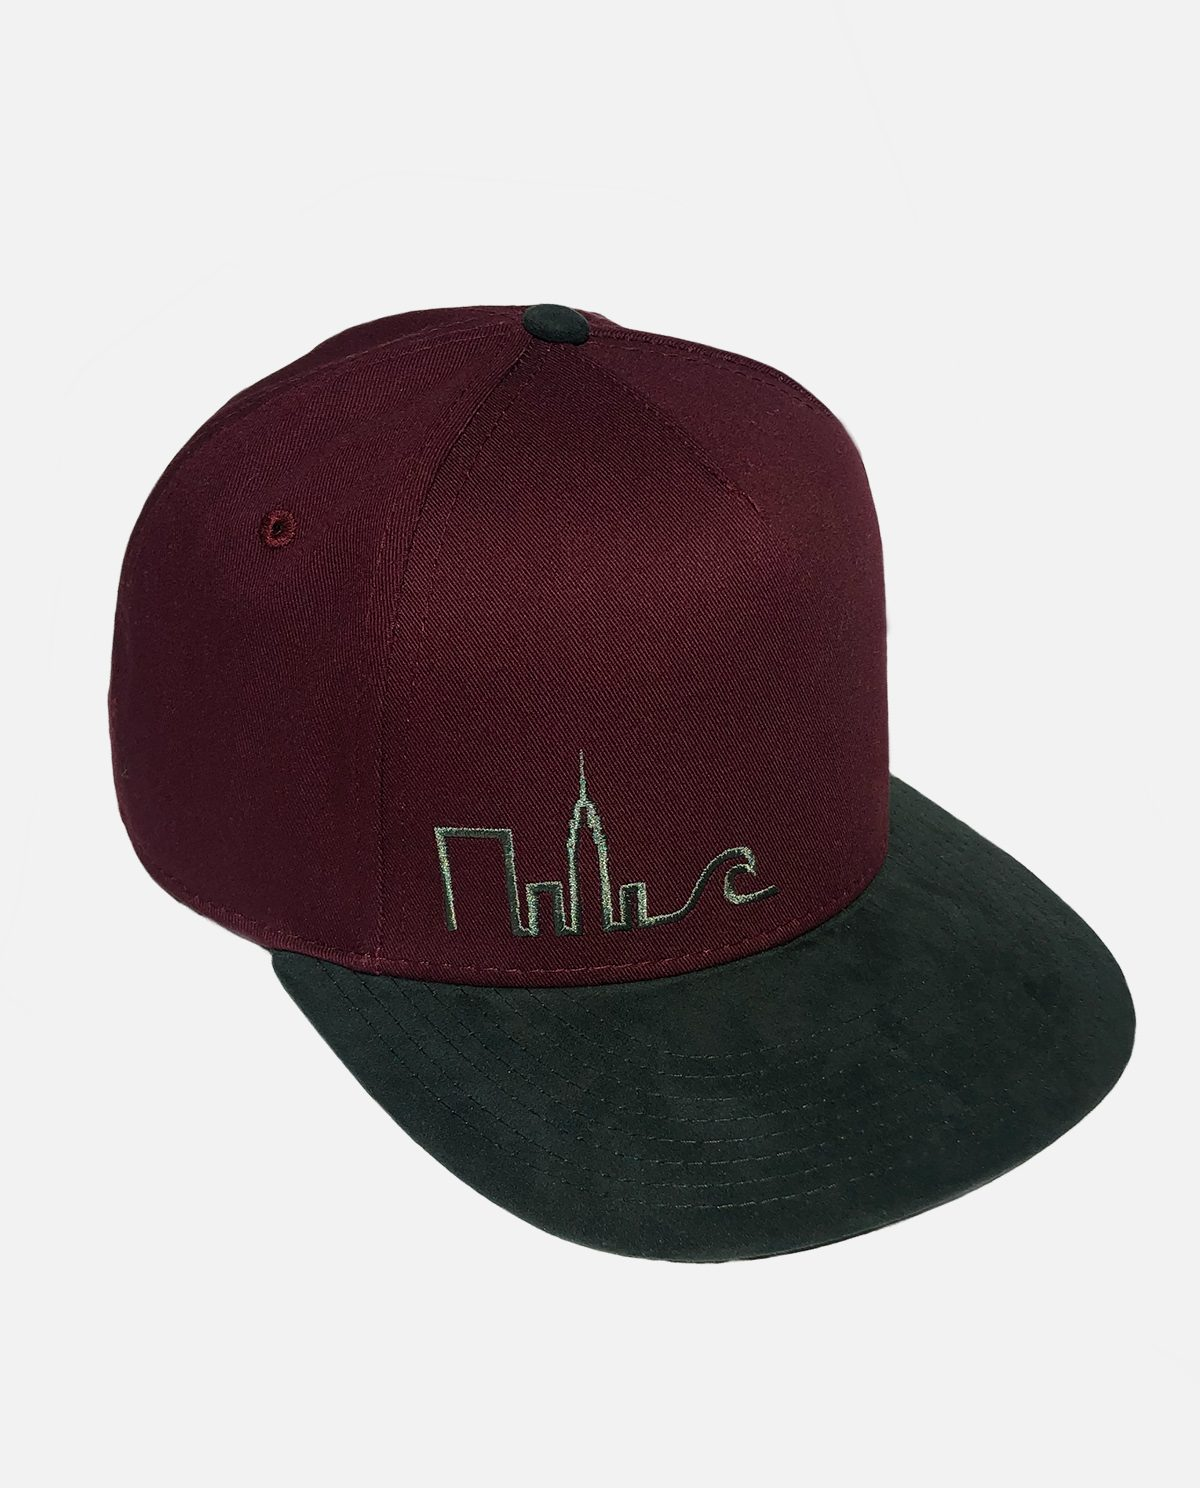 nysea-20wintercollection_hat-skyline-maroon-front